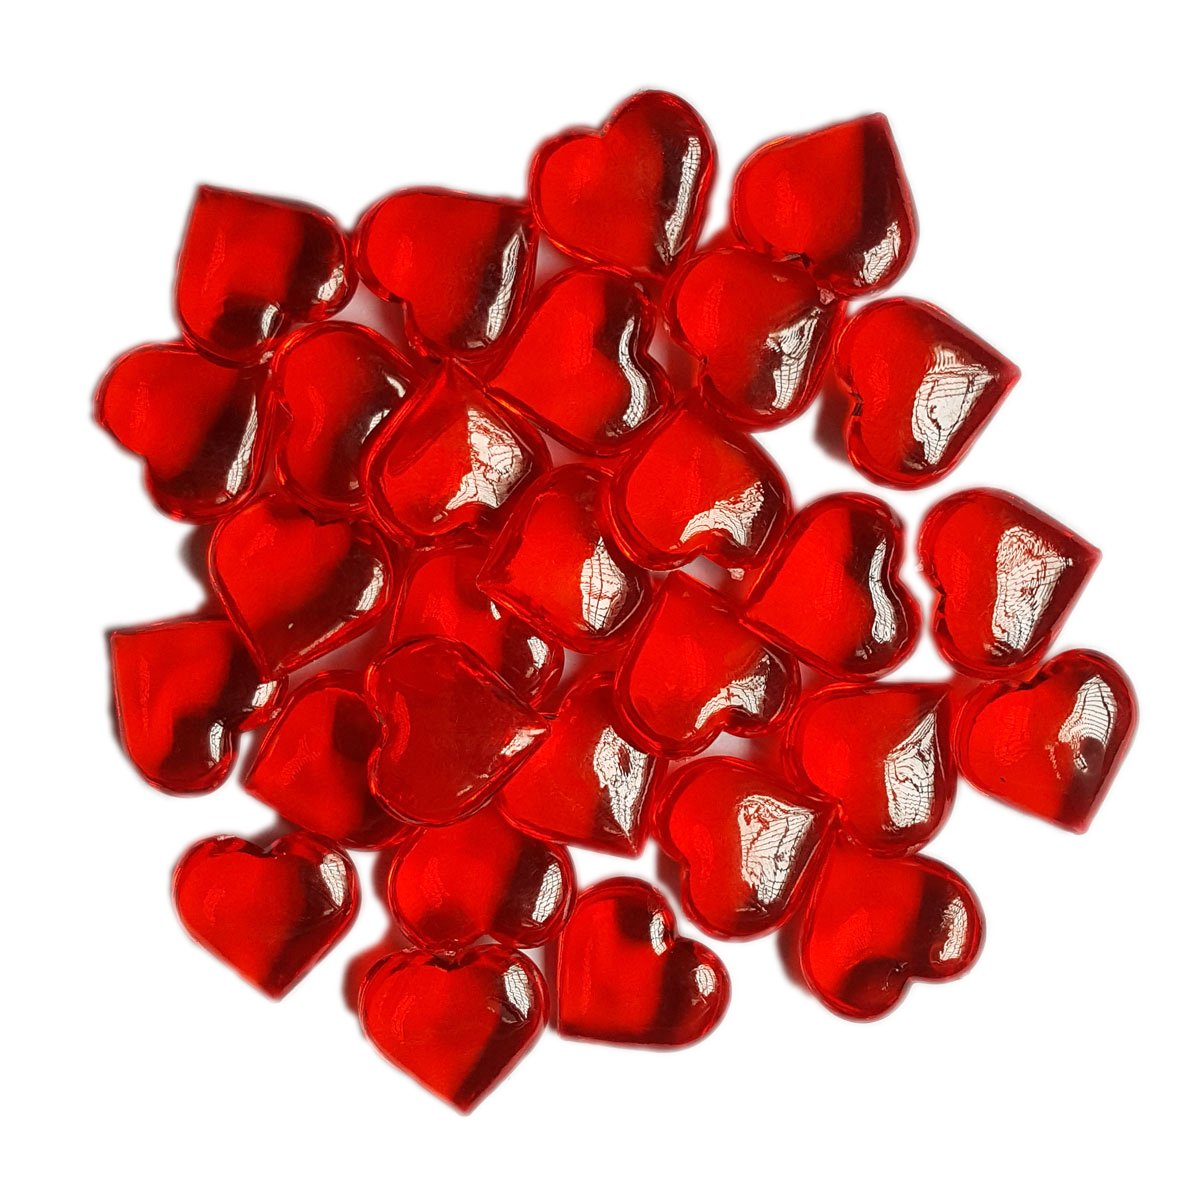 ElE&GANT 1LB(Approx 225Pcs) Red Acrylic Heart For Table Scatter Decoration or Vase Fillers Greatplastic